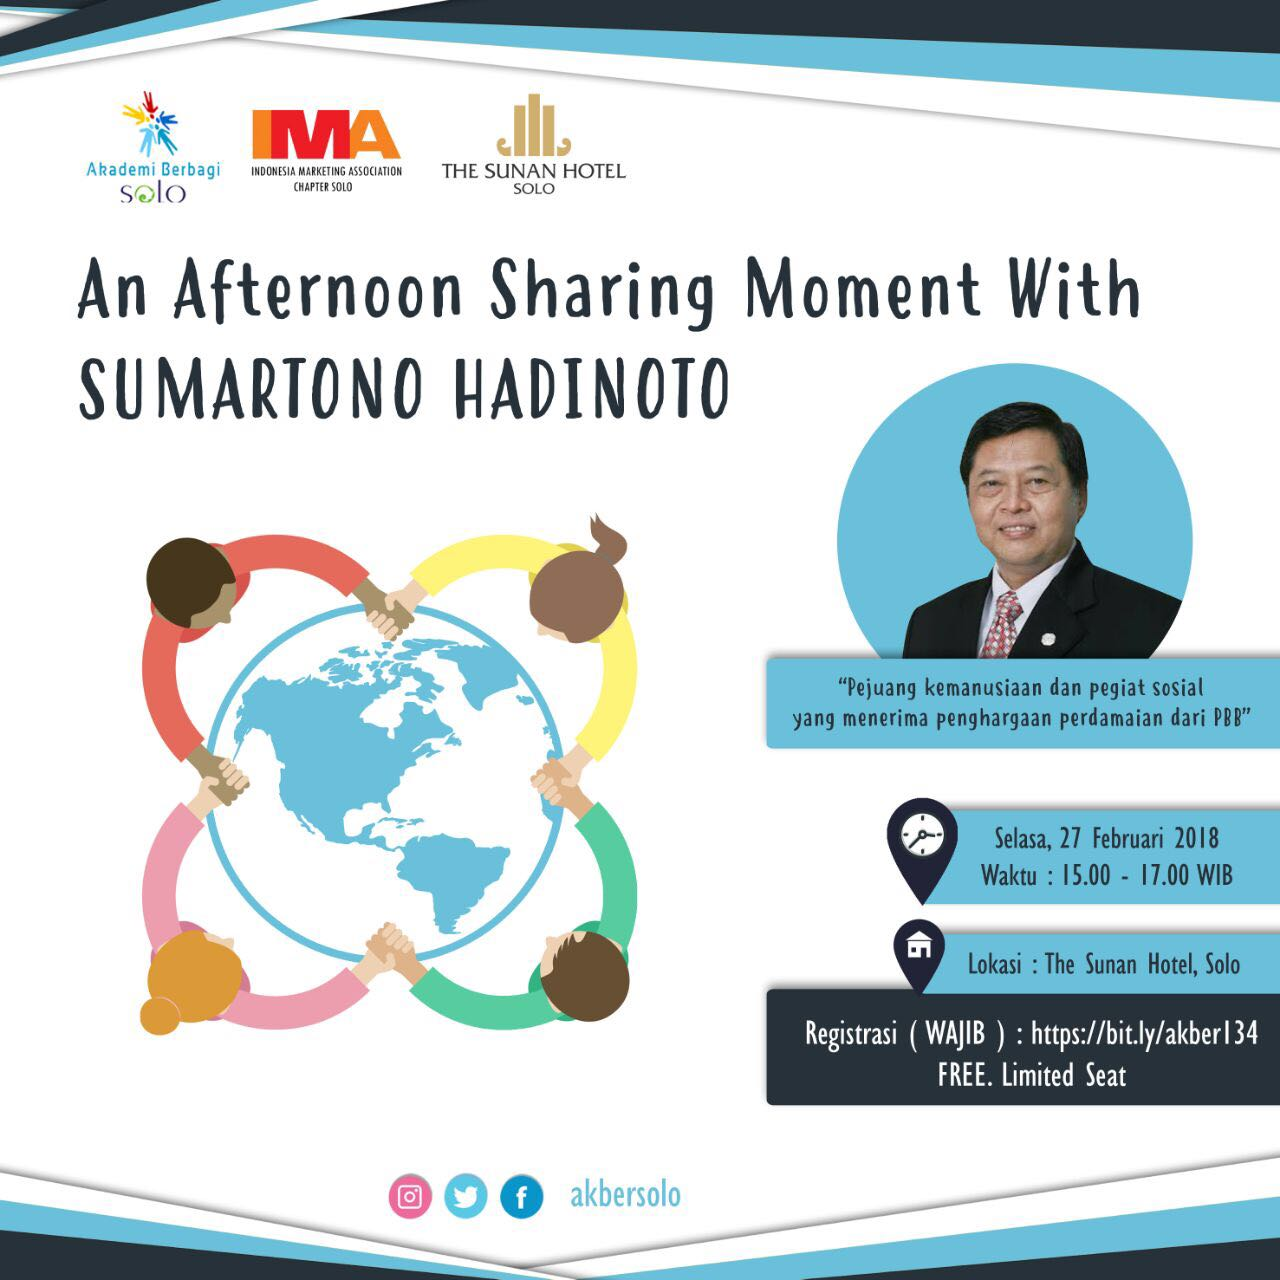 Solo: An Afternoon Sharing Moment with Sumartono Hadinoto